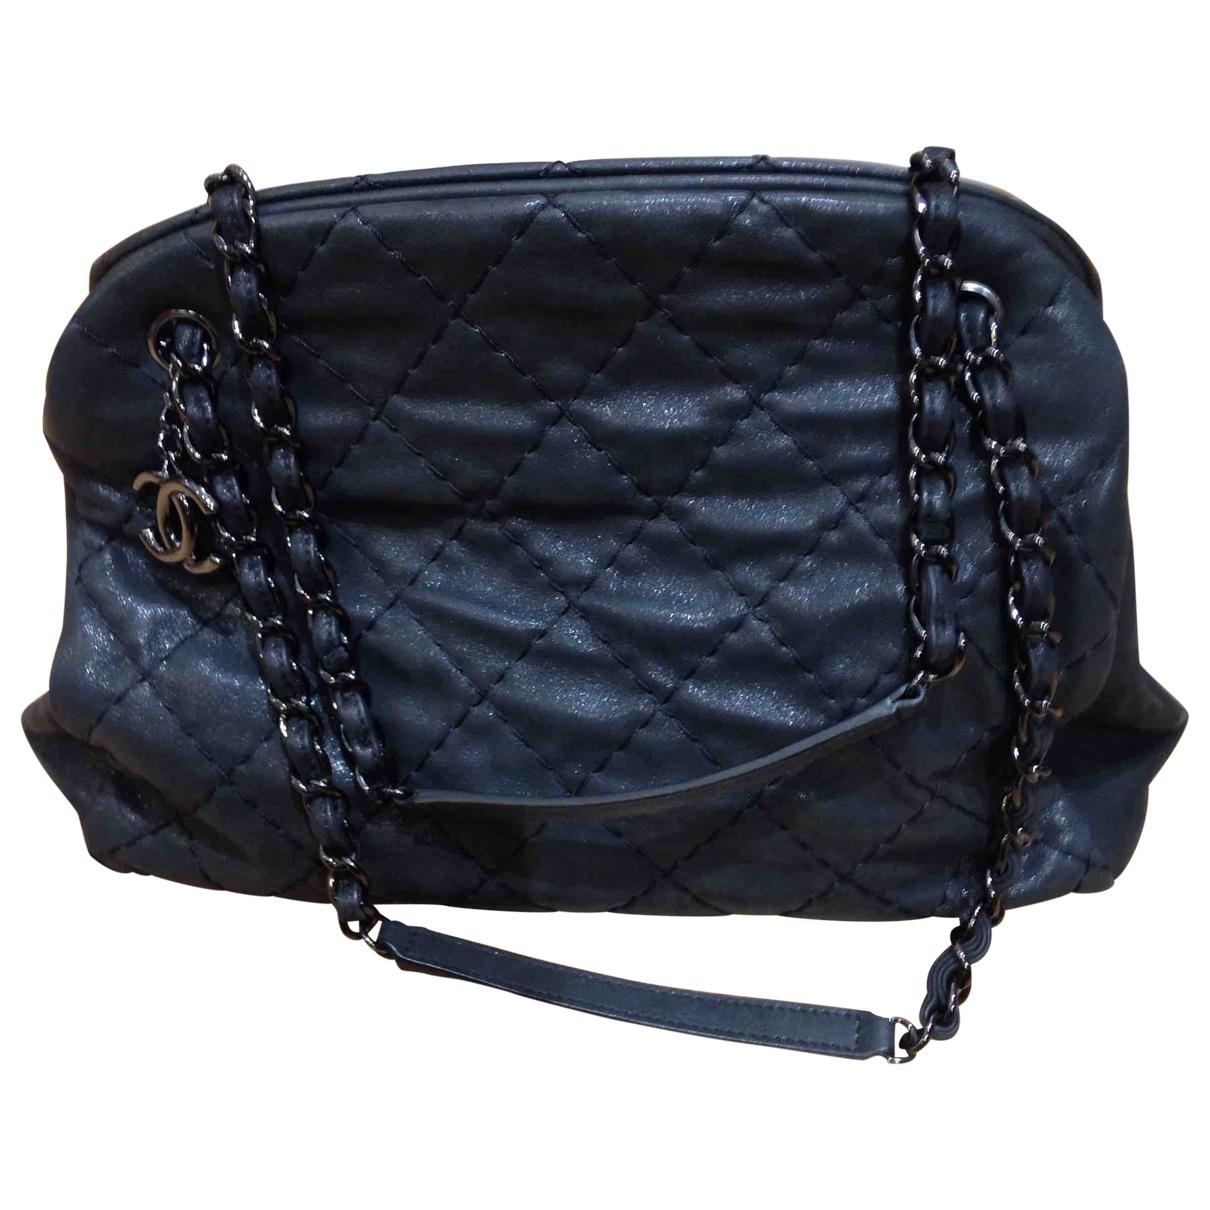 48f9f42990bb49 Pre Owned Chanel Bags Uk | Stanford Center for Opportunity Policy in ...